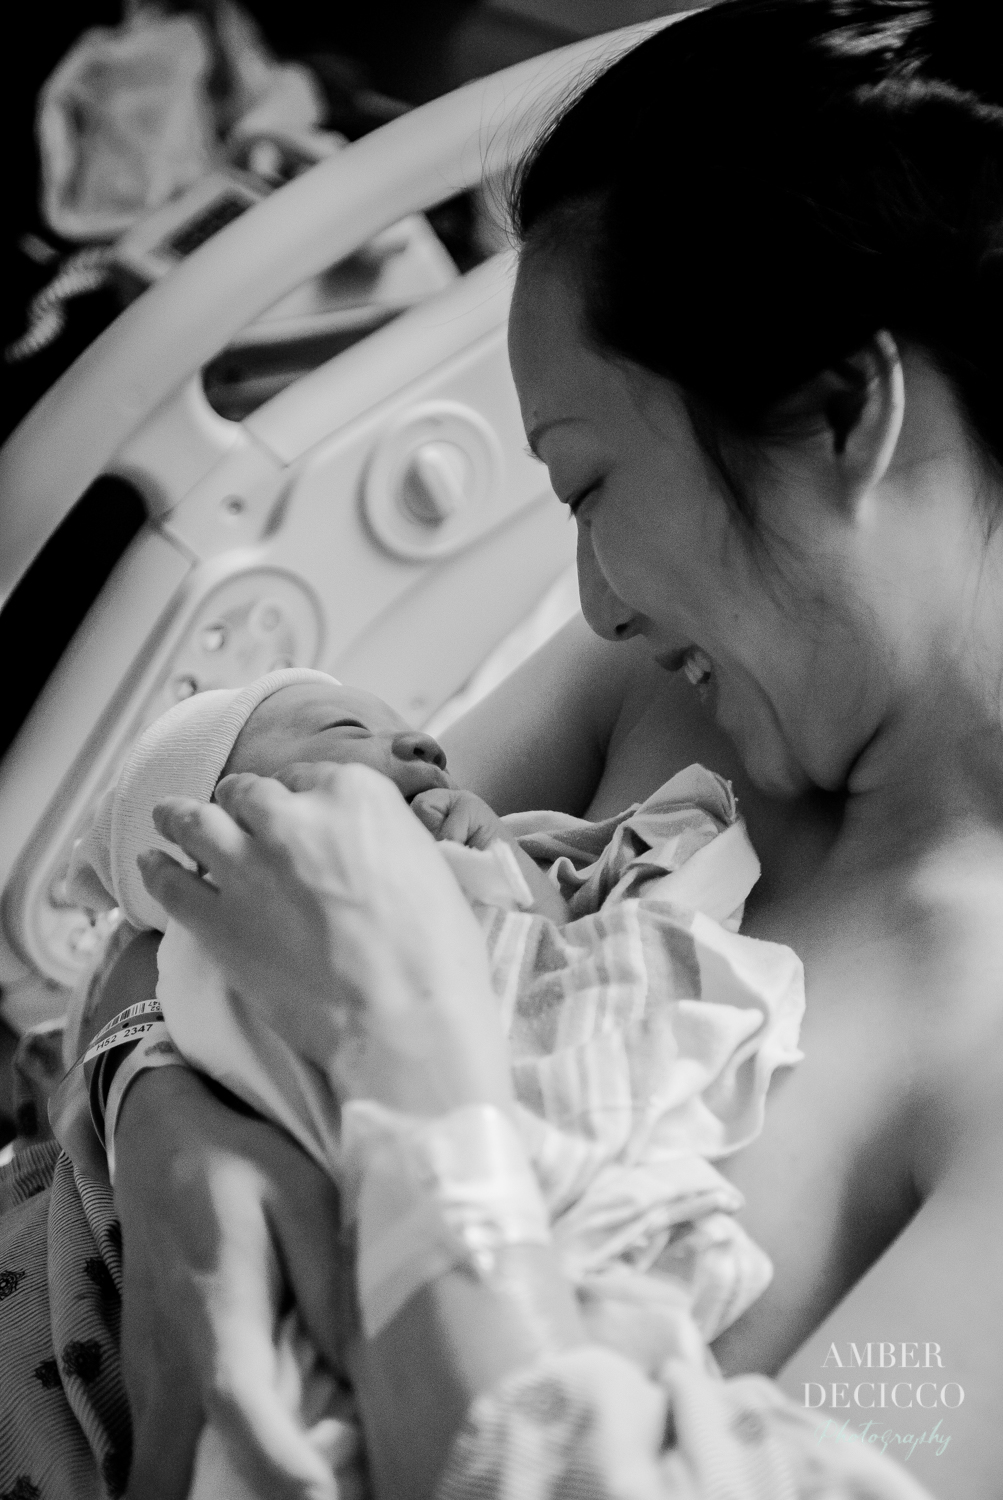 Mom admiring her baby | Birth Photography ©Amber DeCicco Photography